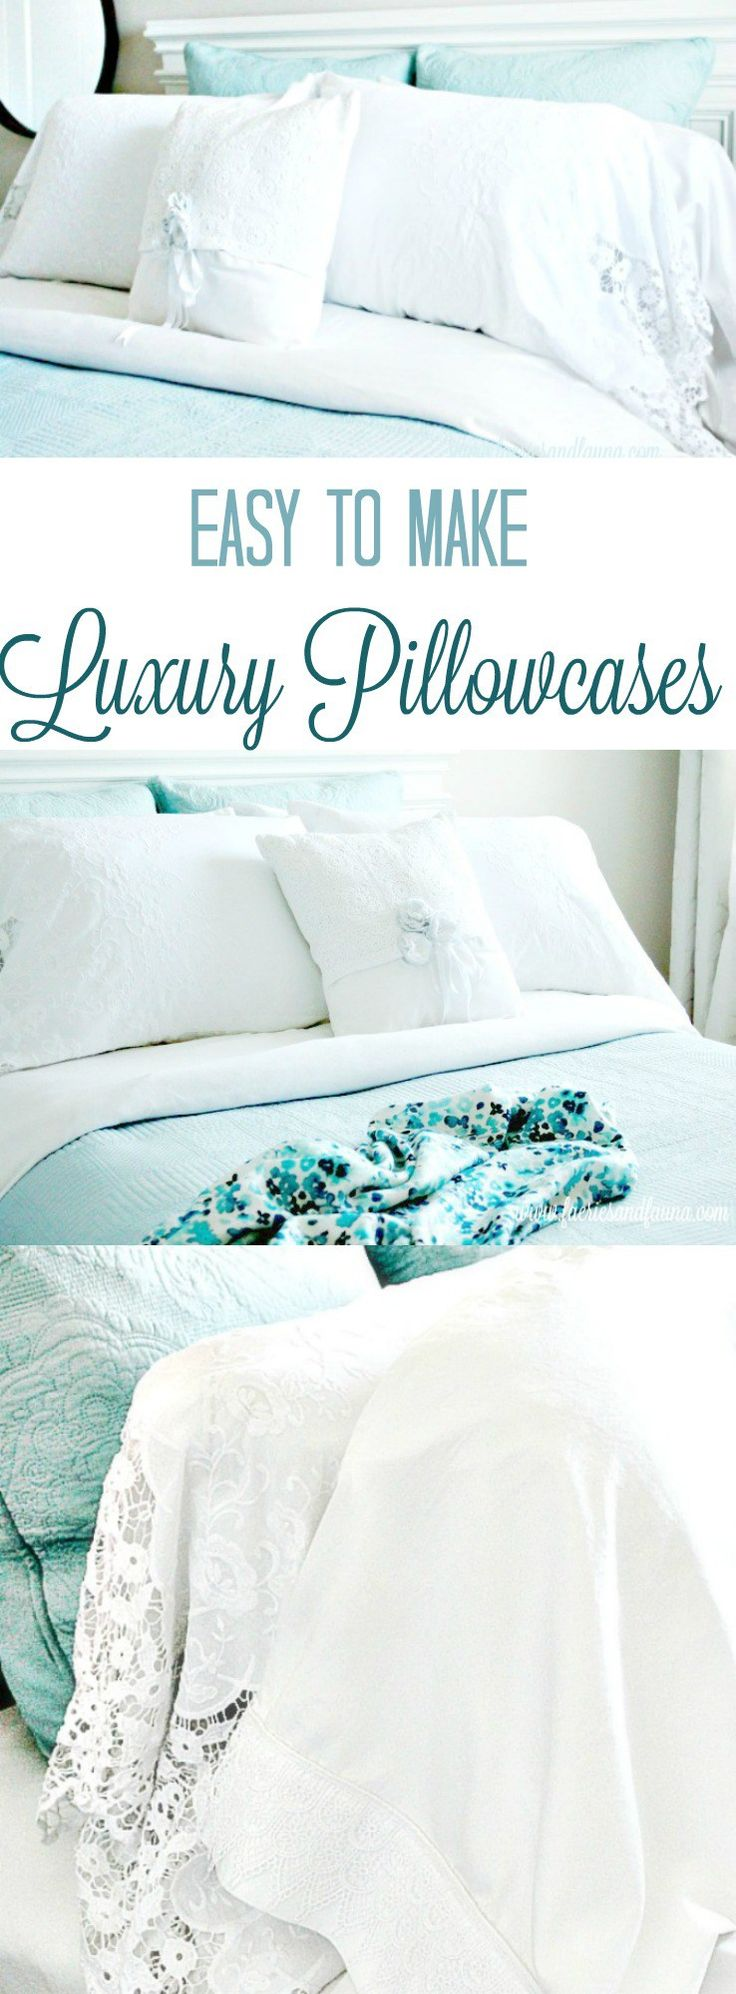 Homemade pillowcases,sewing pillowcases, easy pillowcase pattern, pillowcase sewing patter, pillowcase ideas, diy pillowcase, lacy pillowcase, luxury pillowcase